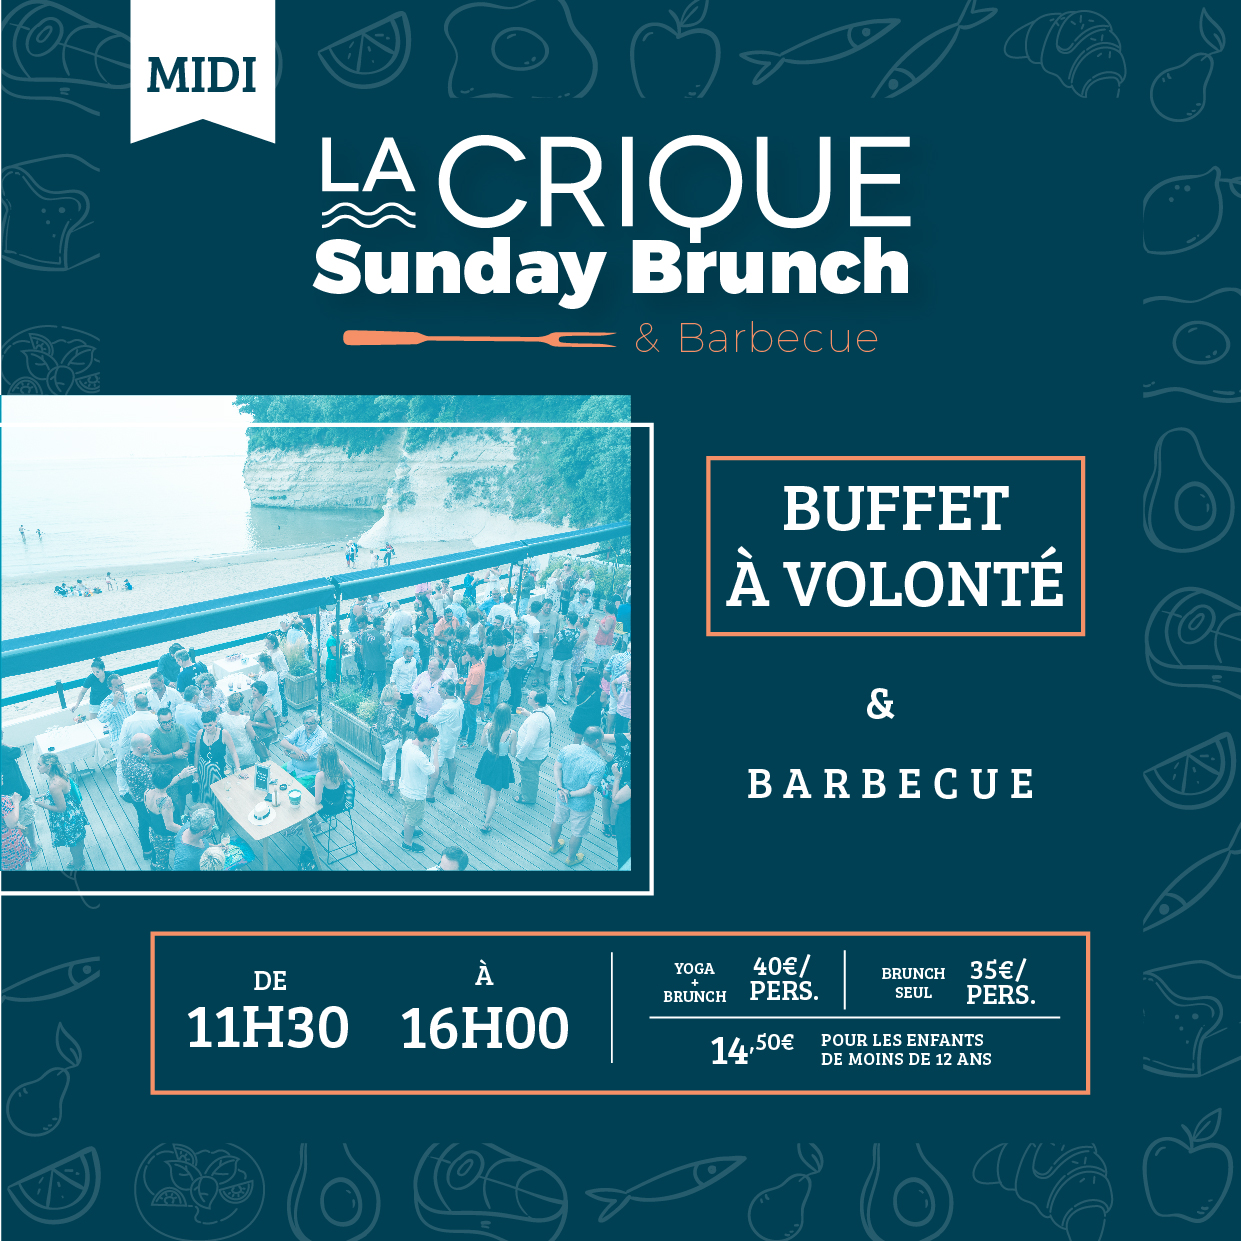 Sunday Brunch La Crique